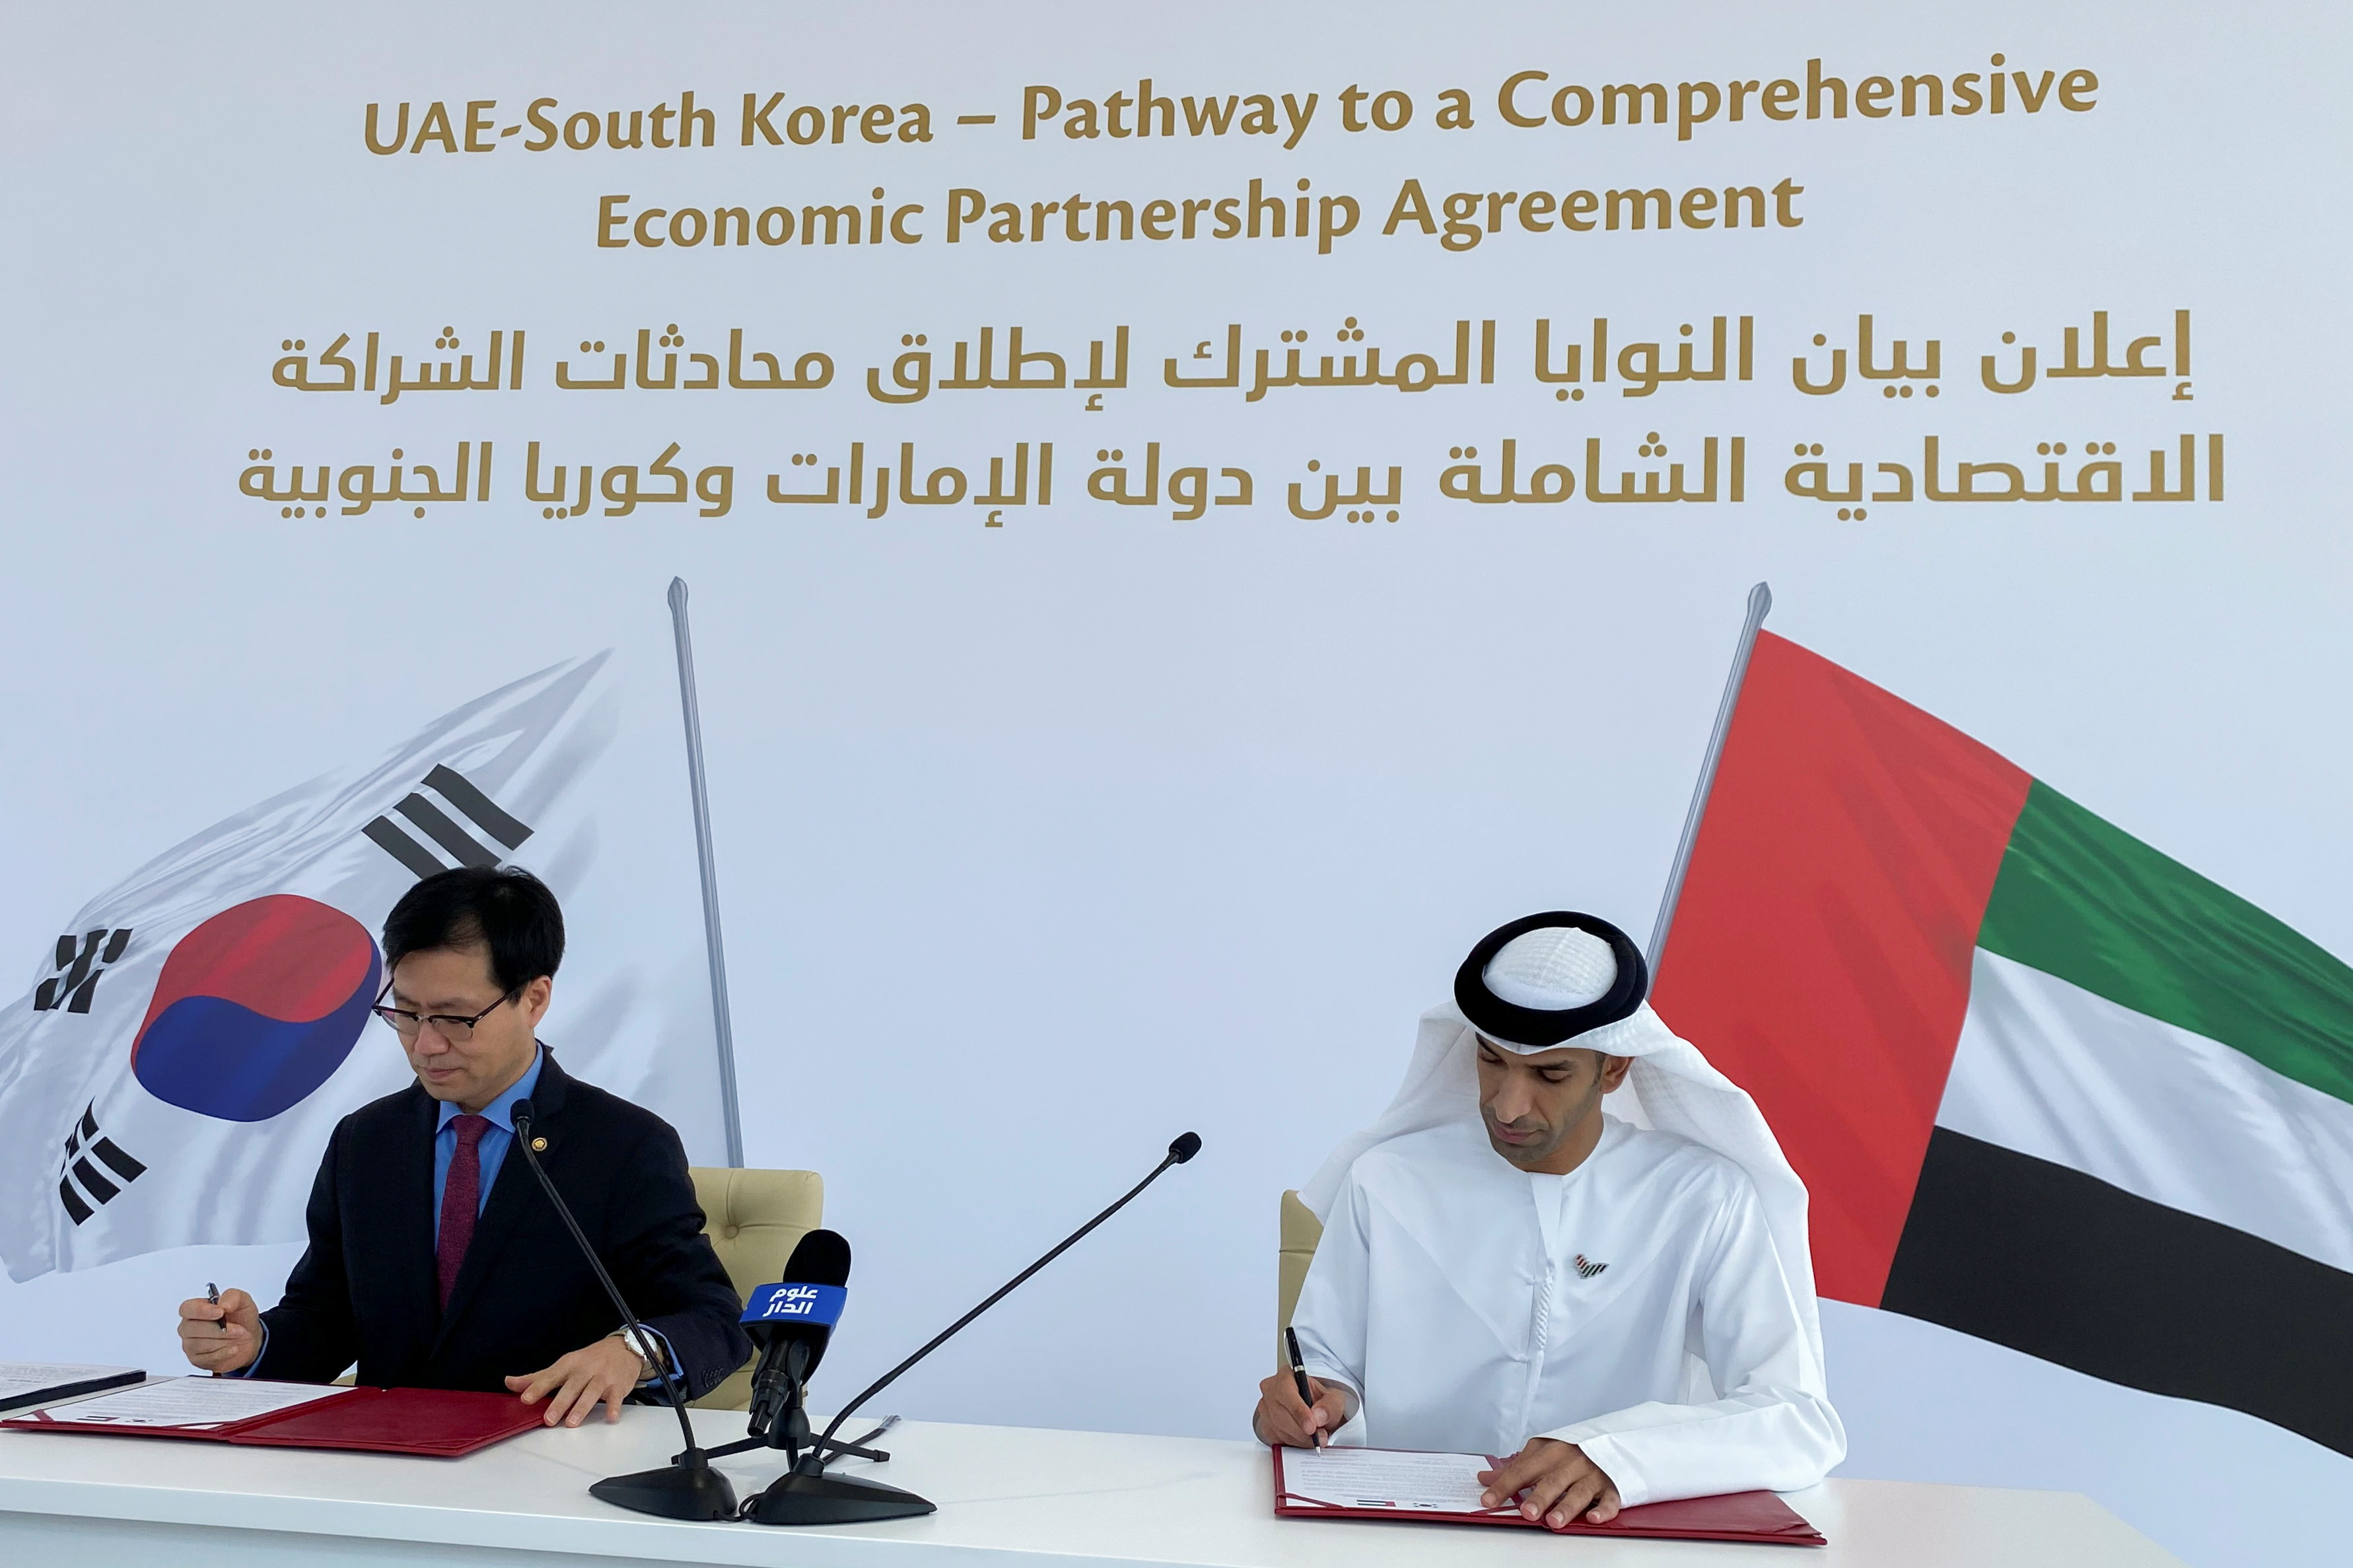 South Korean Trade Minister Yeo Han-koo and United Arab Emirates Minister of State for Foreign Trade Thani Al Zeyoudi sign documents during the announcement of the intent between the two nations to pursue a comprehensive economic partnership agreement (CEPA) in Dubai, United Arab Emirates, October 14, 2021. REUTERS/Alexander Cornwell